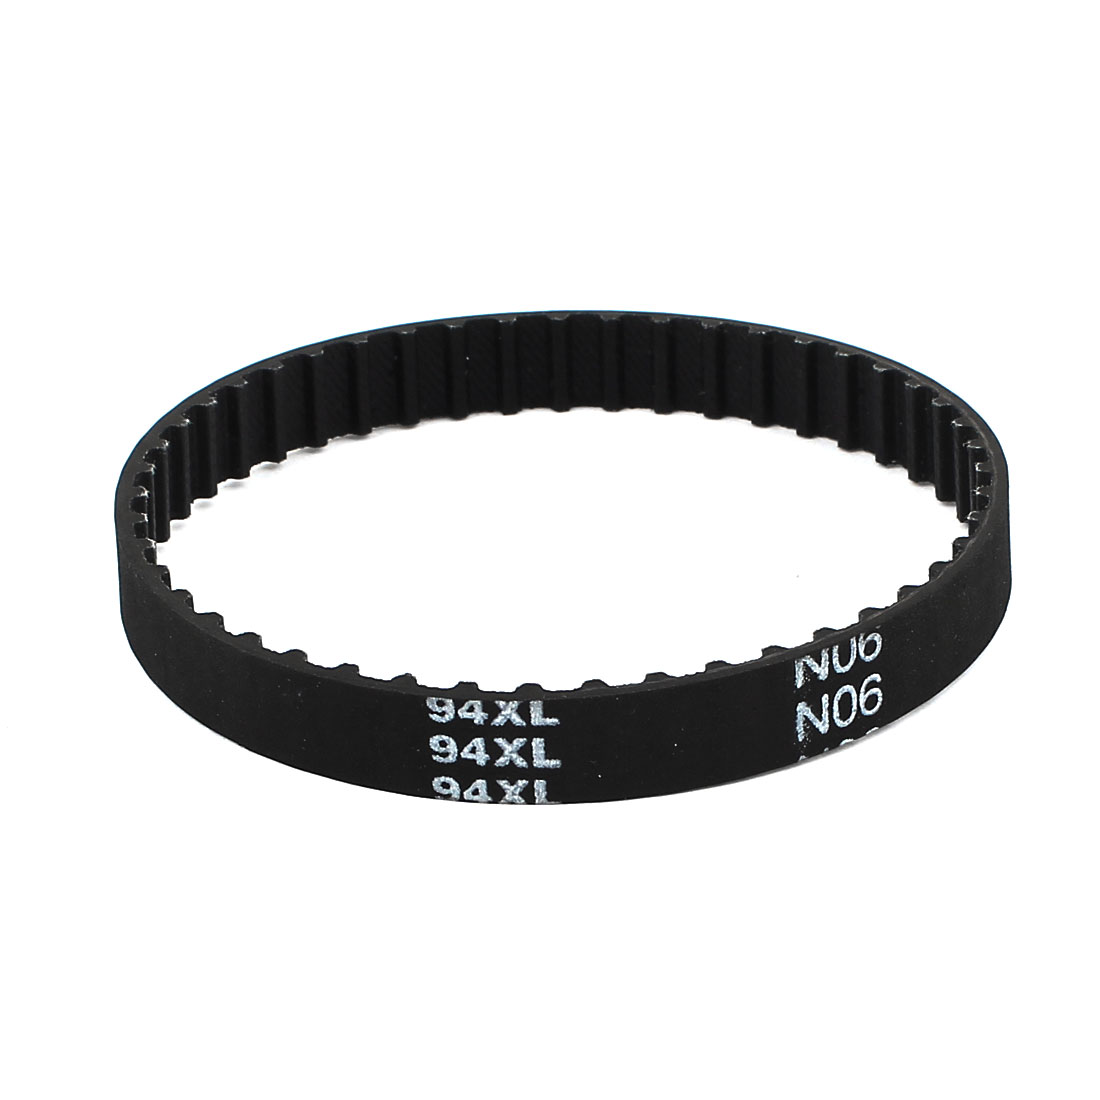 94XL 037 47 Teeth 9.5mm Width Rubber Drying Machine Timing Belt Black